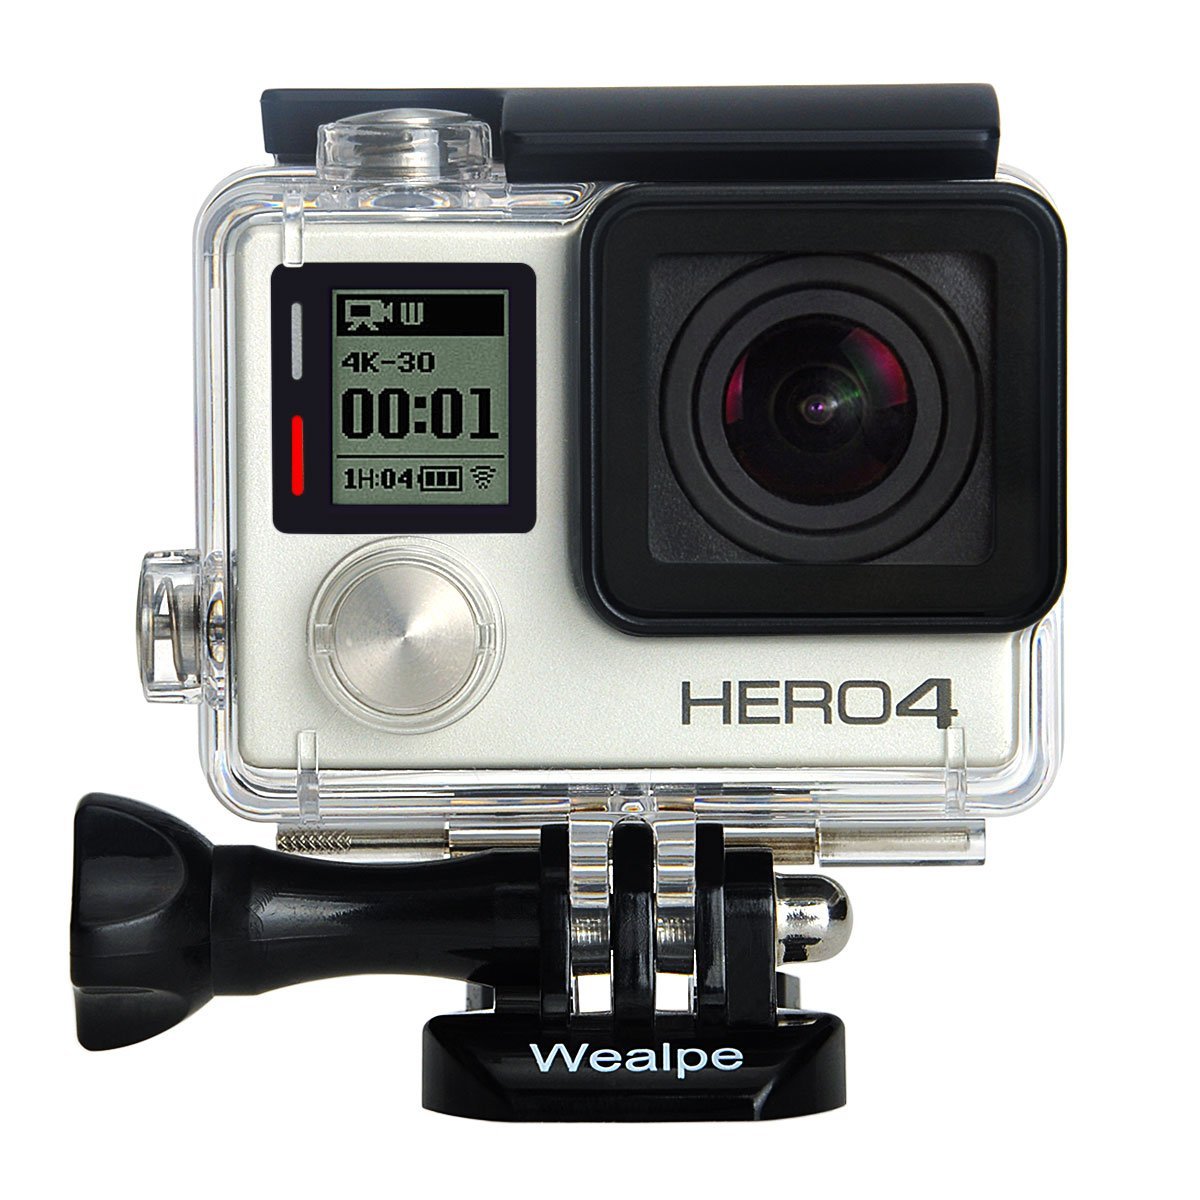 Wealpe Waterproof Housing Case Underwater Protective Dive Housing for GoPro Hero 4, 3+, 3 Cameras